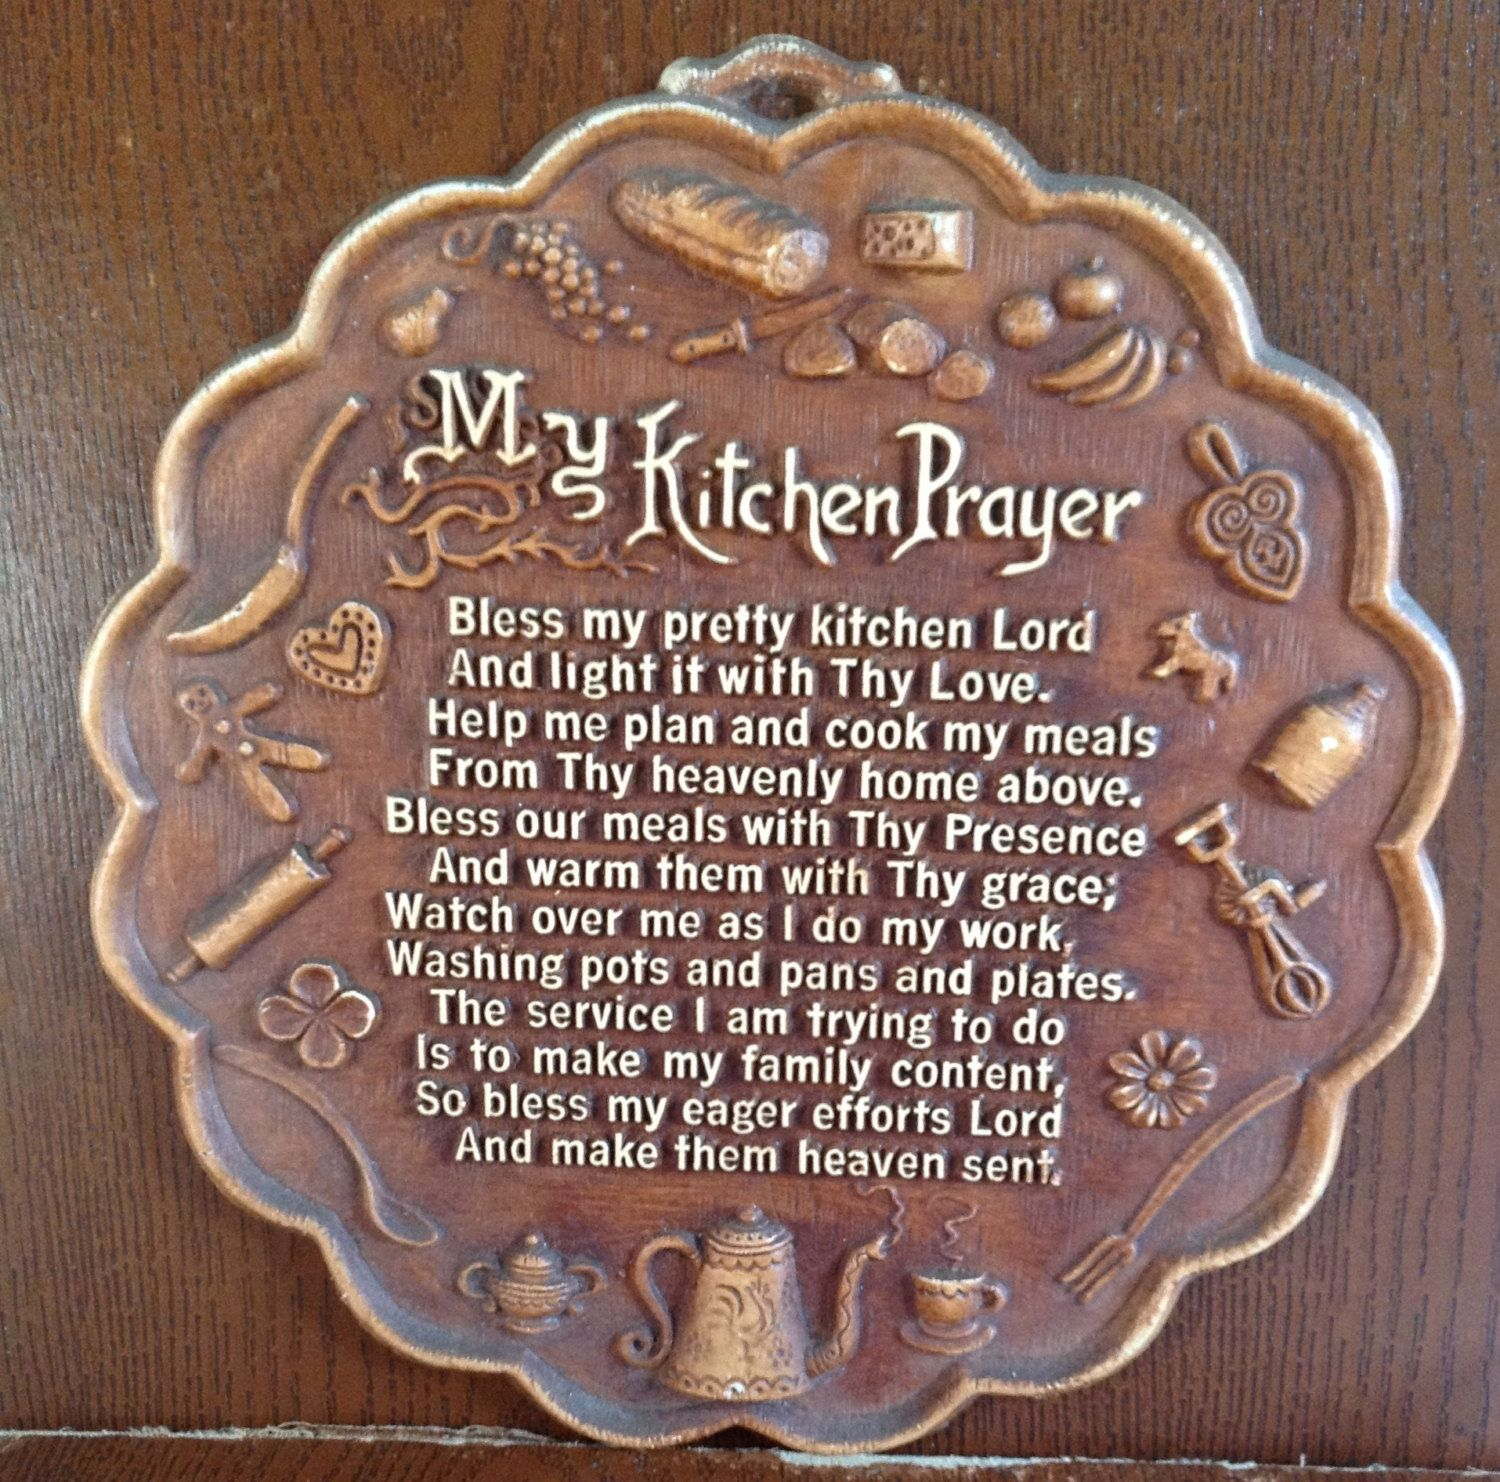 Kitchen Blessing Wall Decor: Vintage - MY KITCHEN PRAYER - Plaque, Wall Hanging